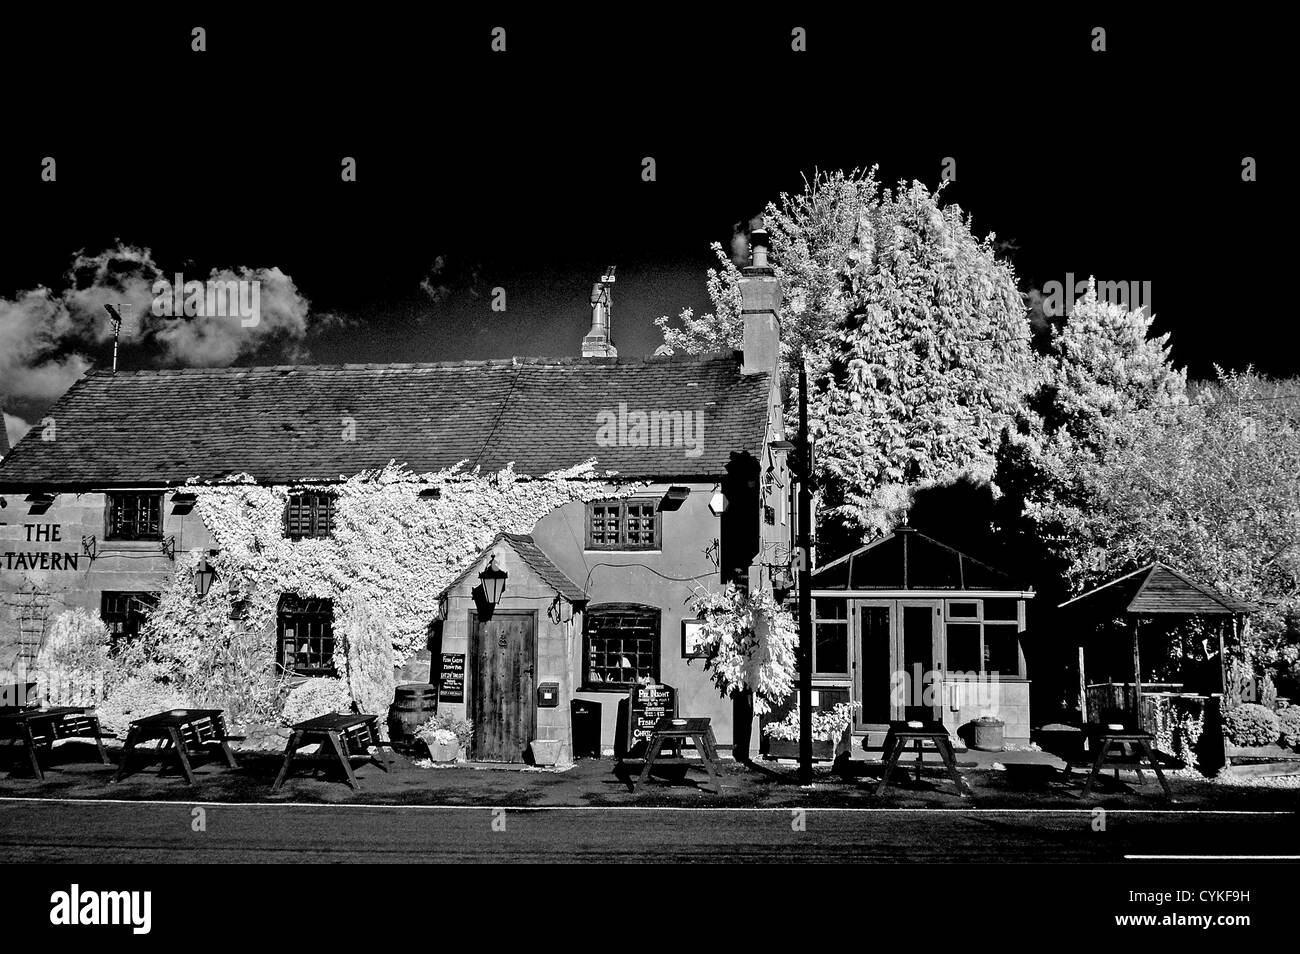 The Tavern Denstone  Uttoxeter Staffordshire infrared monochrome - Stock Image